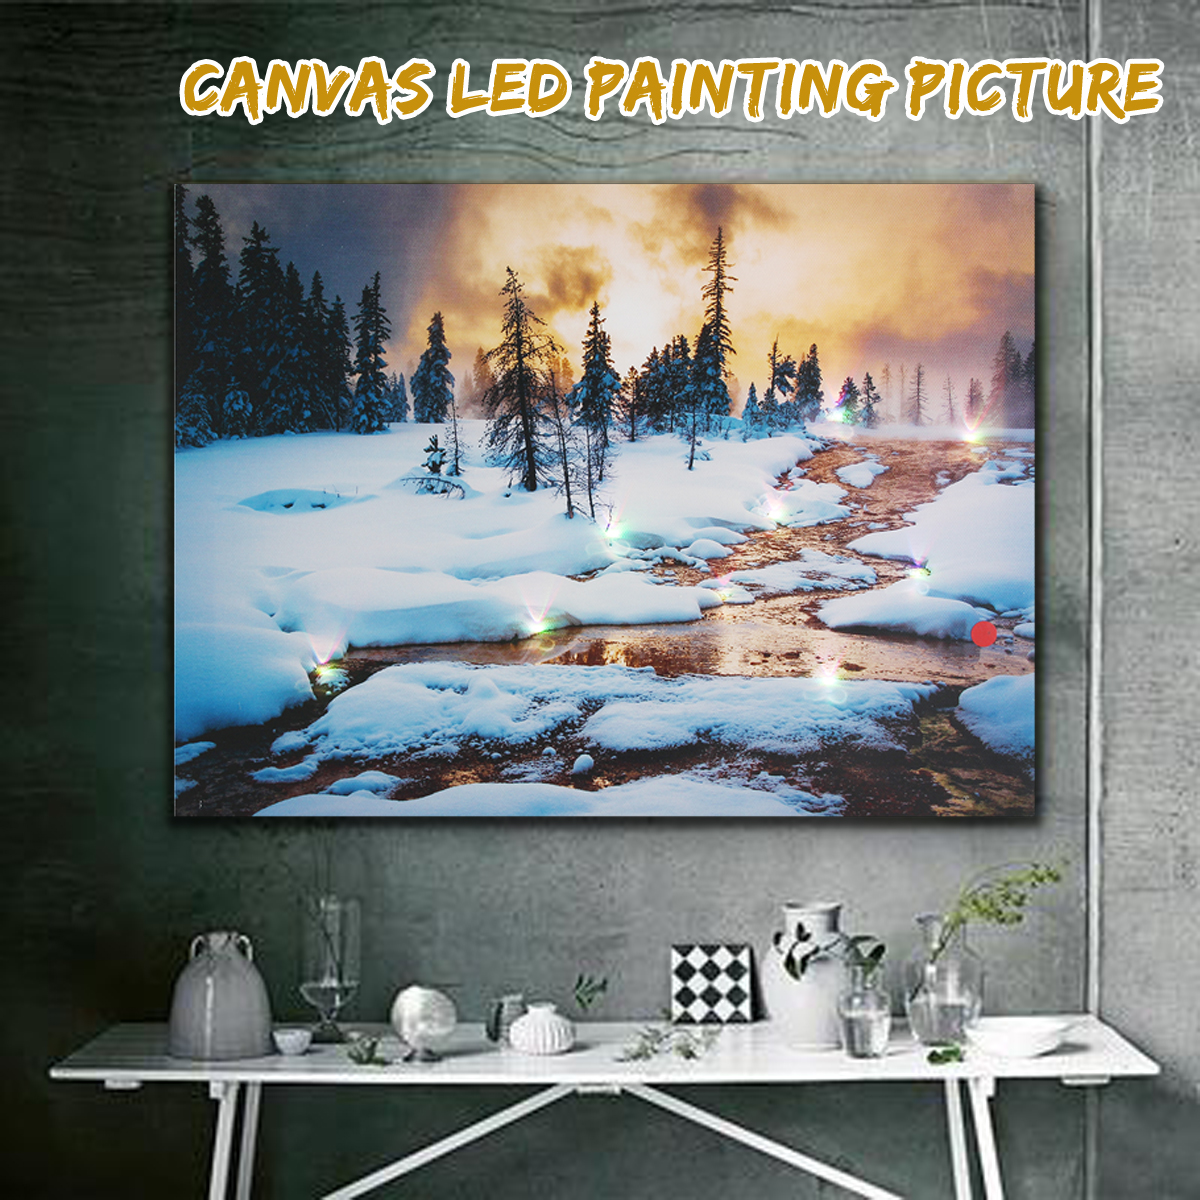 LED Light Up Christmas Canvas Pictures 30x40cm for Xmas Picture Decor Wall Hanging Home Decor Painting & Calligraphy